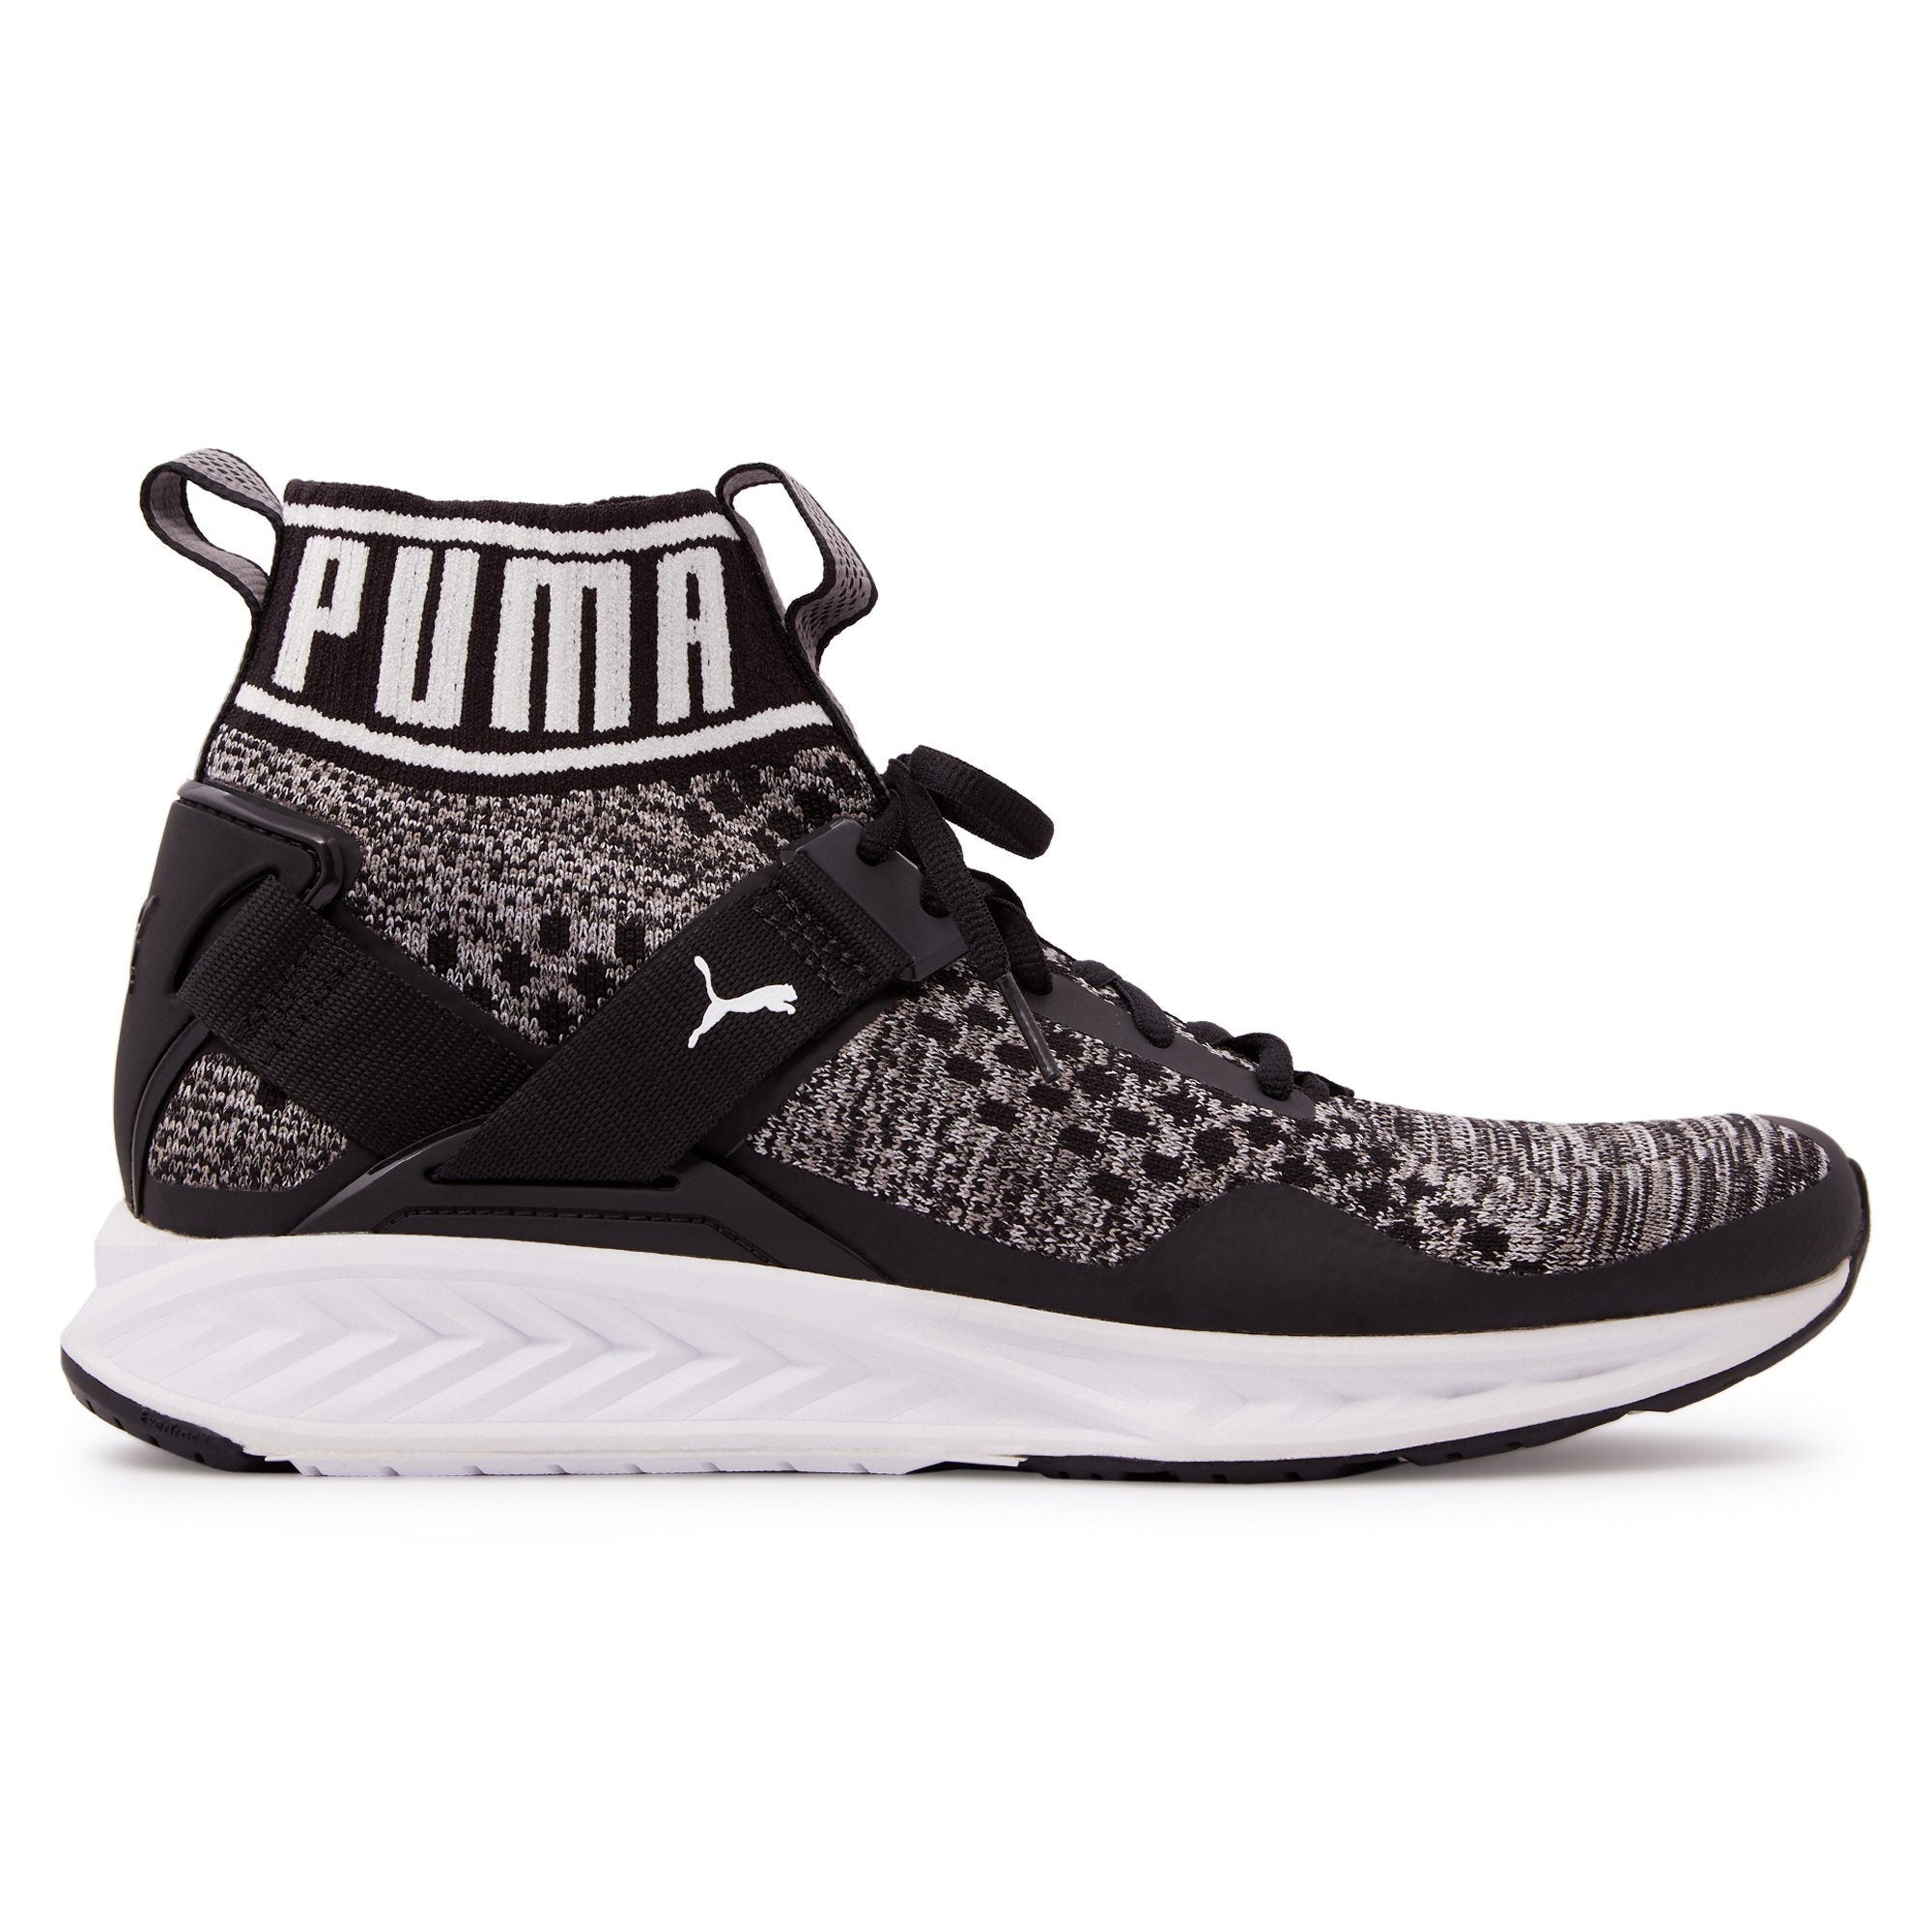 Puma Mens Ignite Evoknit - Black/Quite Shade Footwear Puma  (2122603692091)